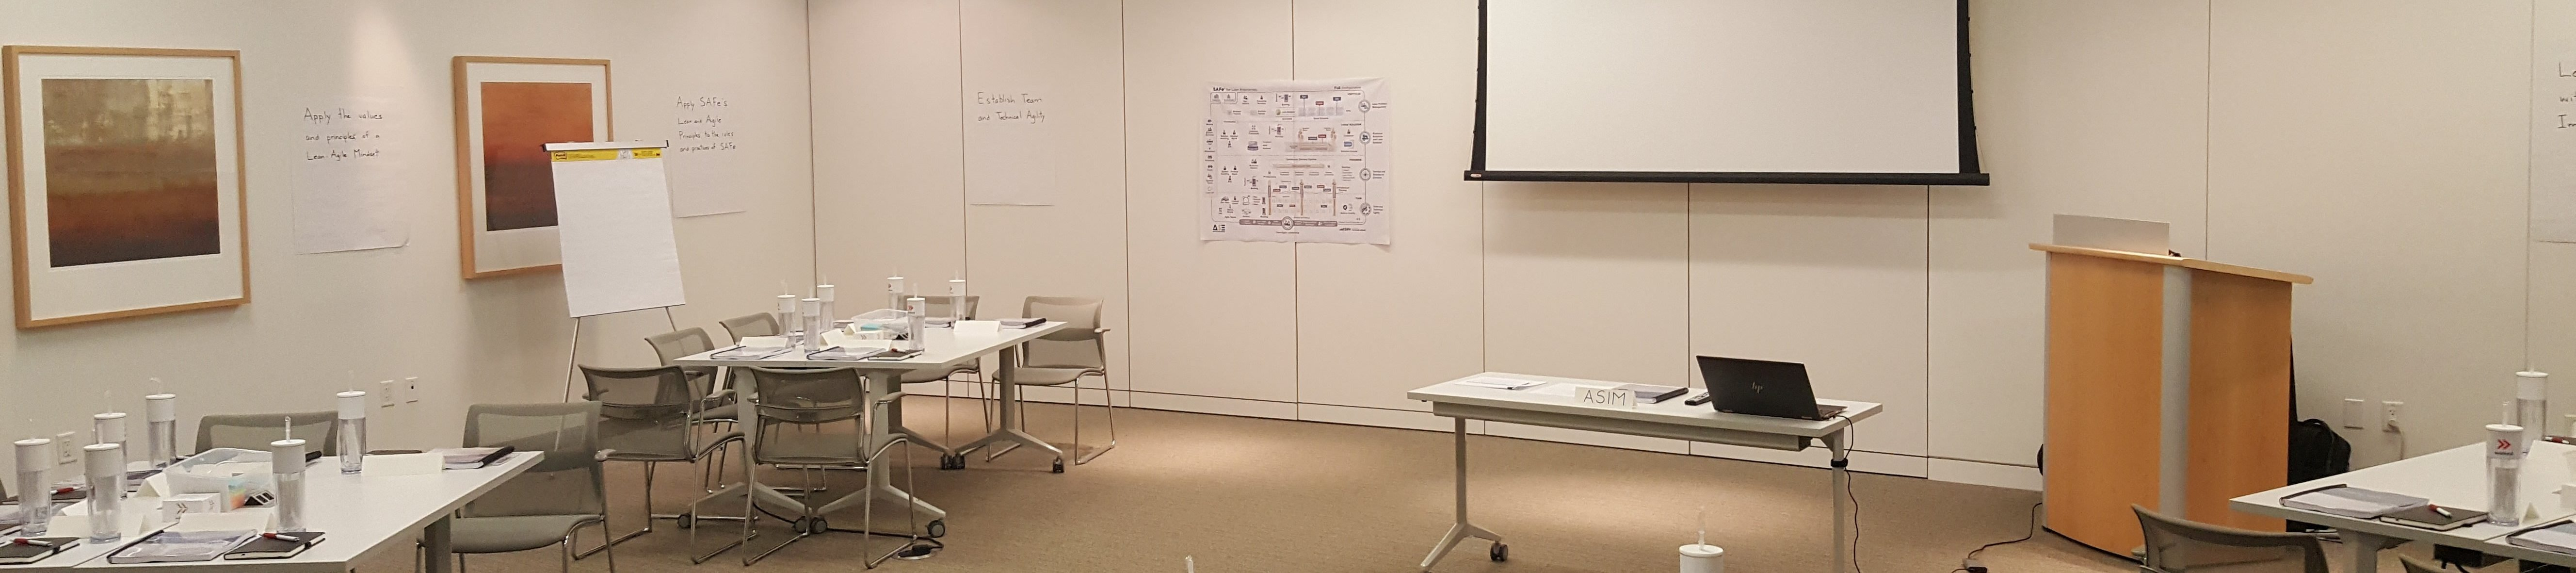 Scaled Agile Training Classroom